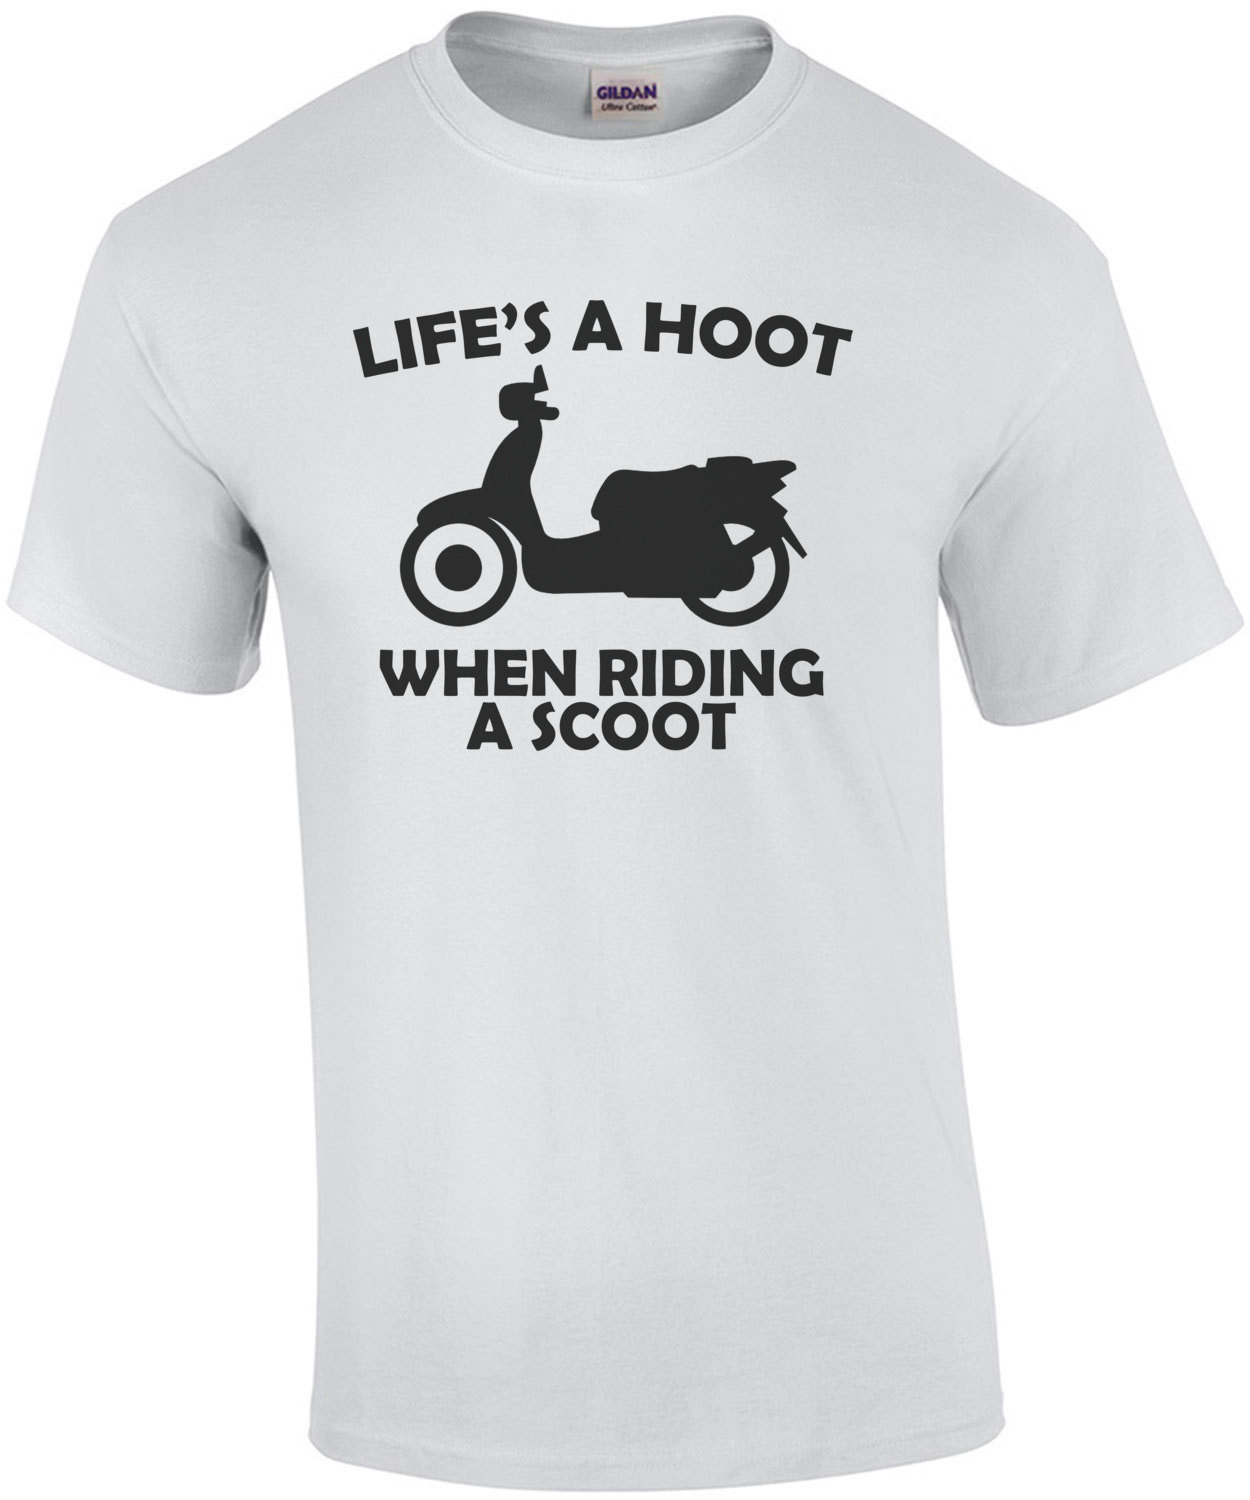 Lifes A Hoot When Riding A Scoot T-Shirt